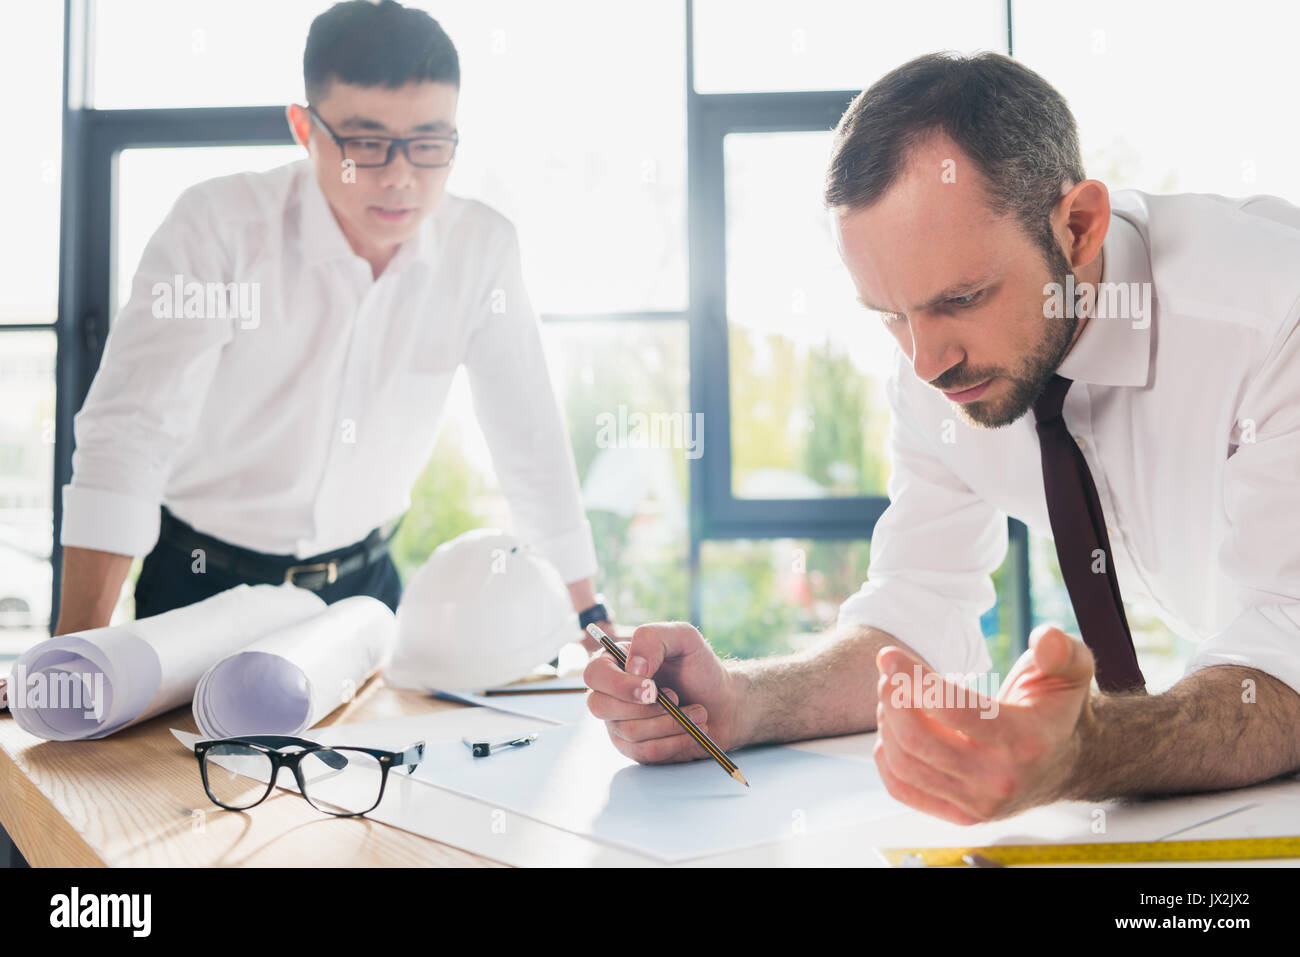 professional architects in formal wear working at modern office - Stock Image